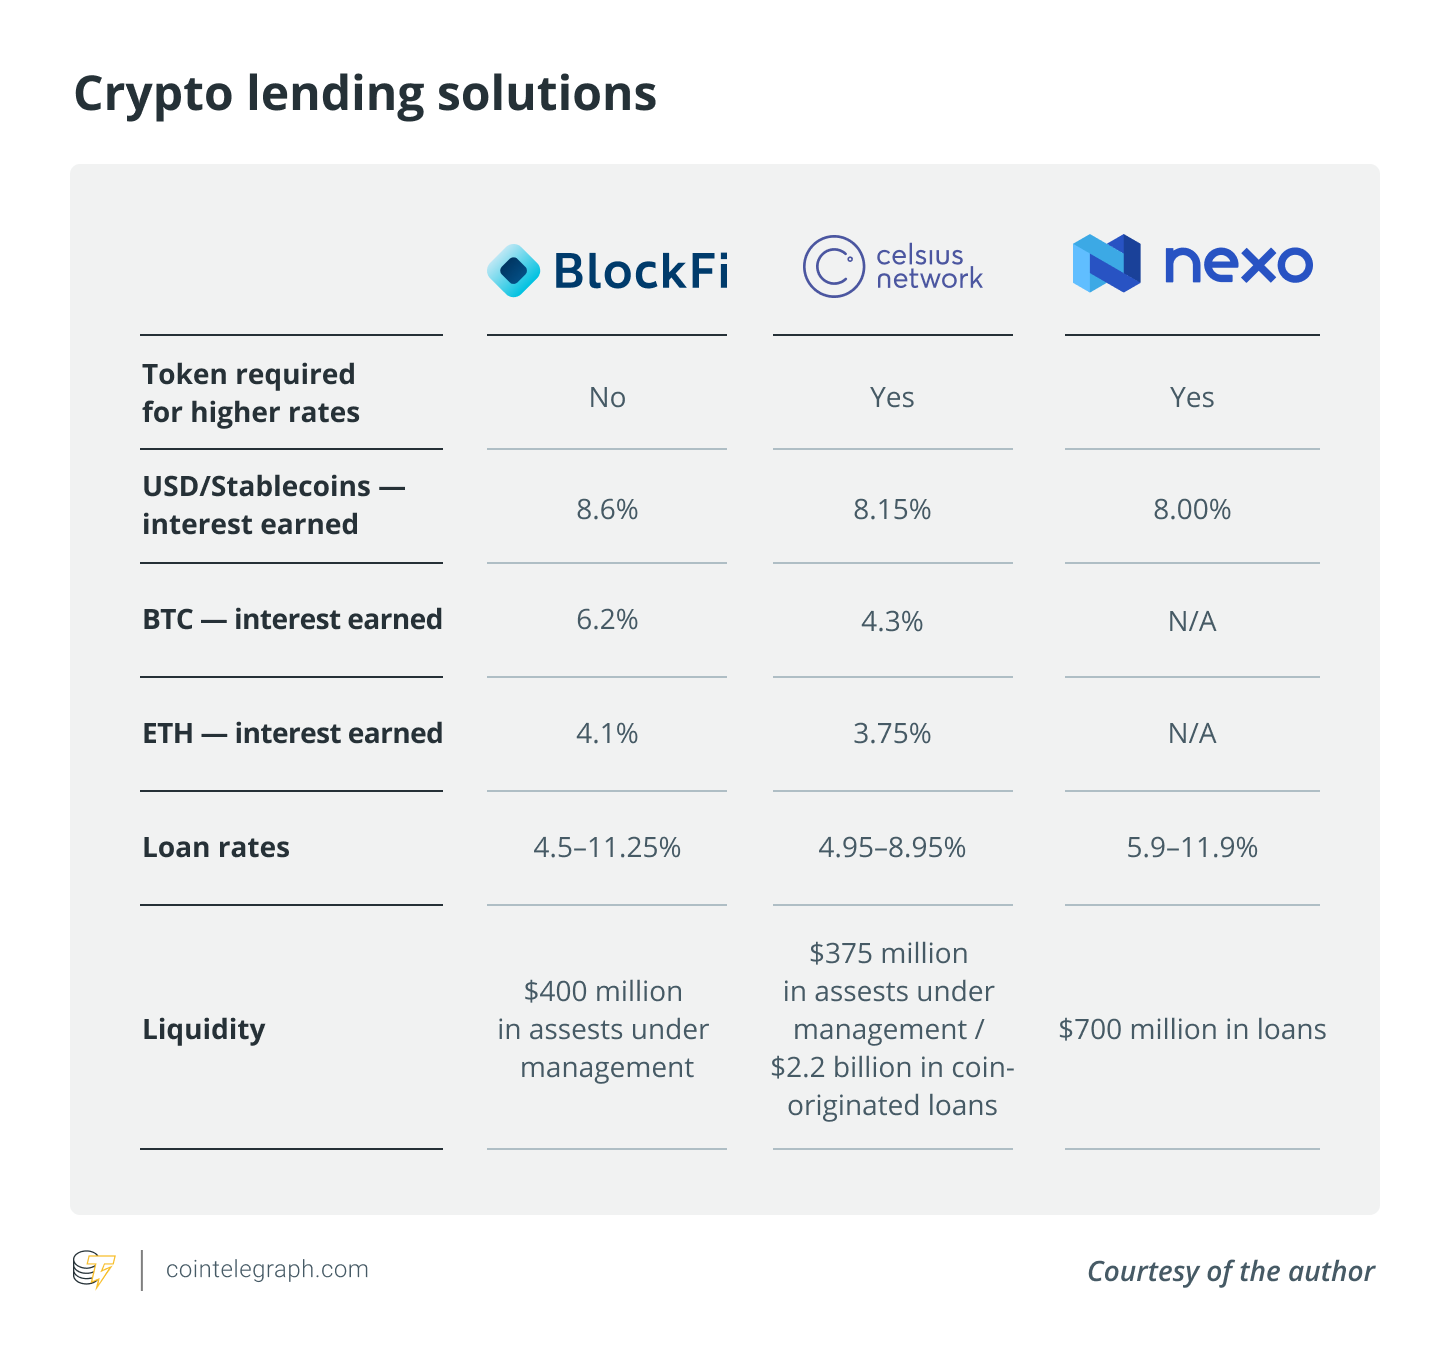 Crypto lending solutions